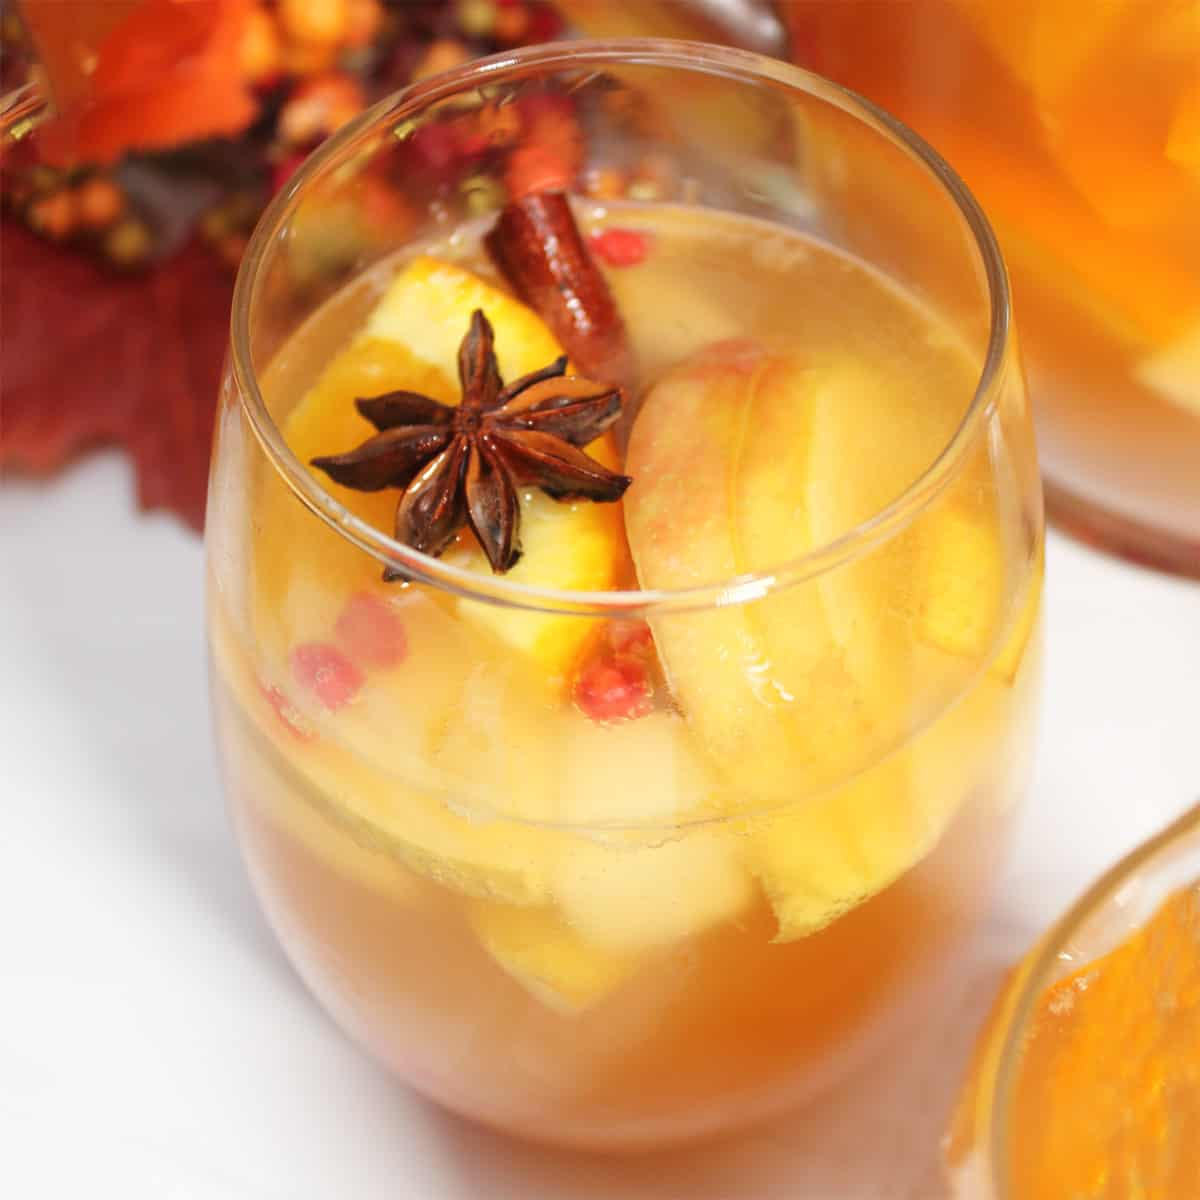 Closeup of glass filled with sangria with star anise and cinnamon stick garnish.